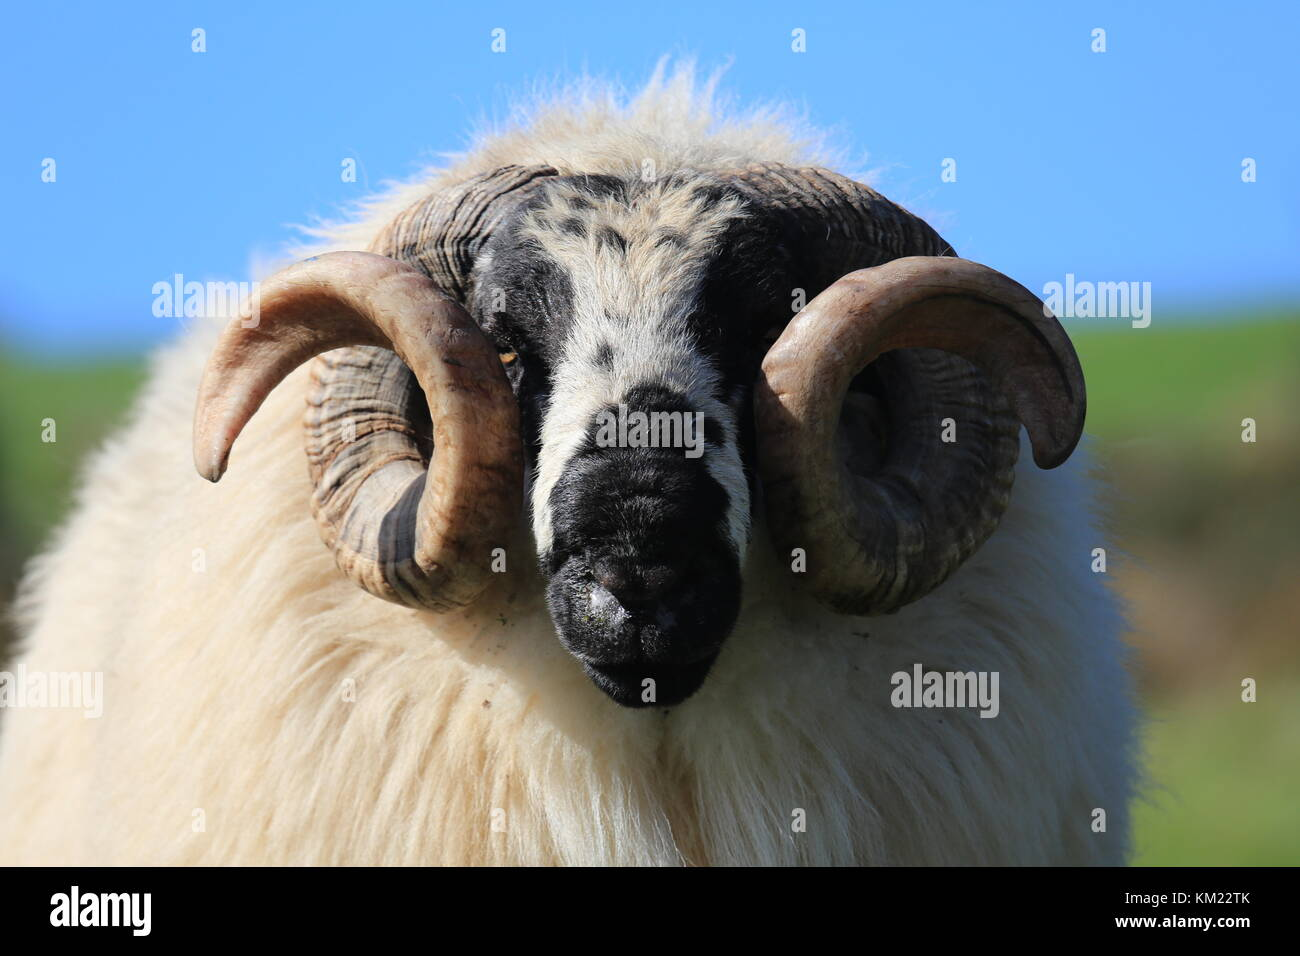 Sheep in Ireland - Stock Image